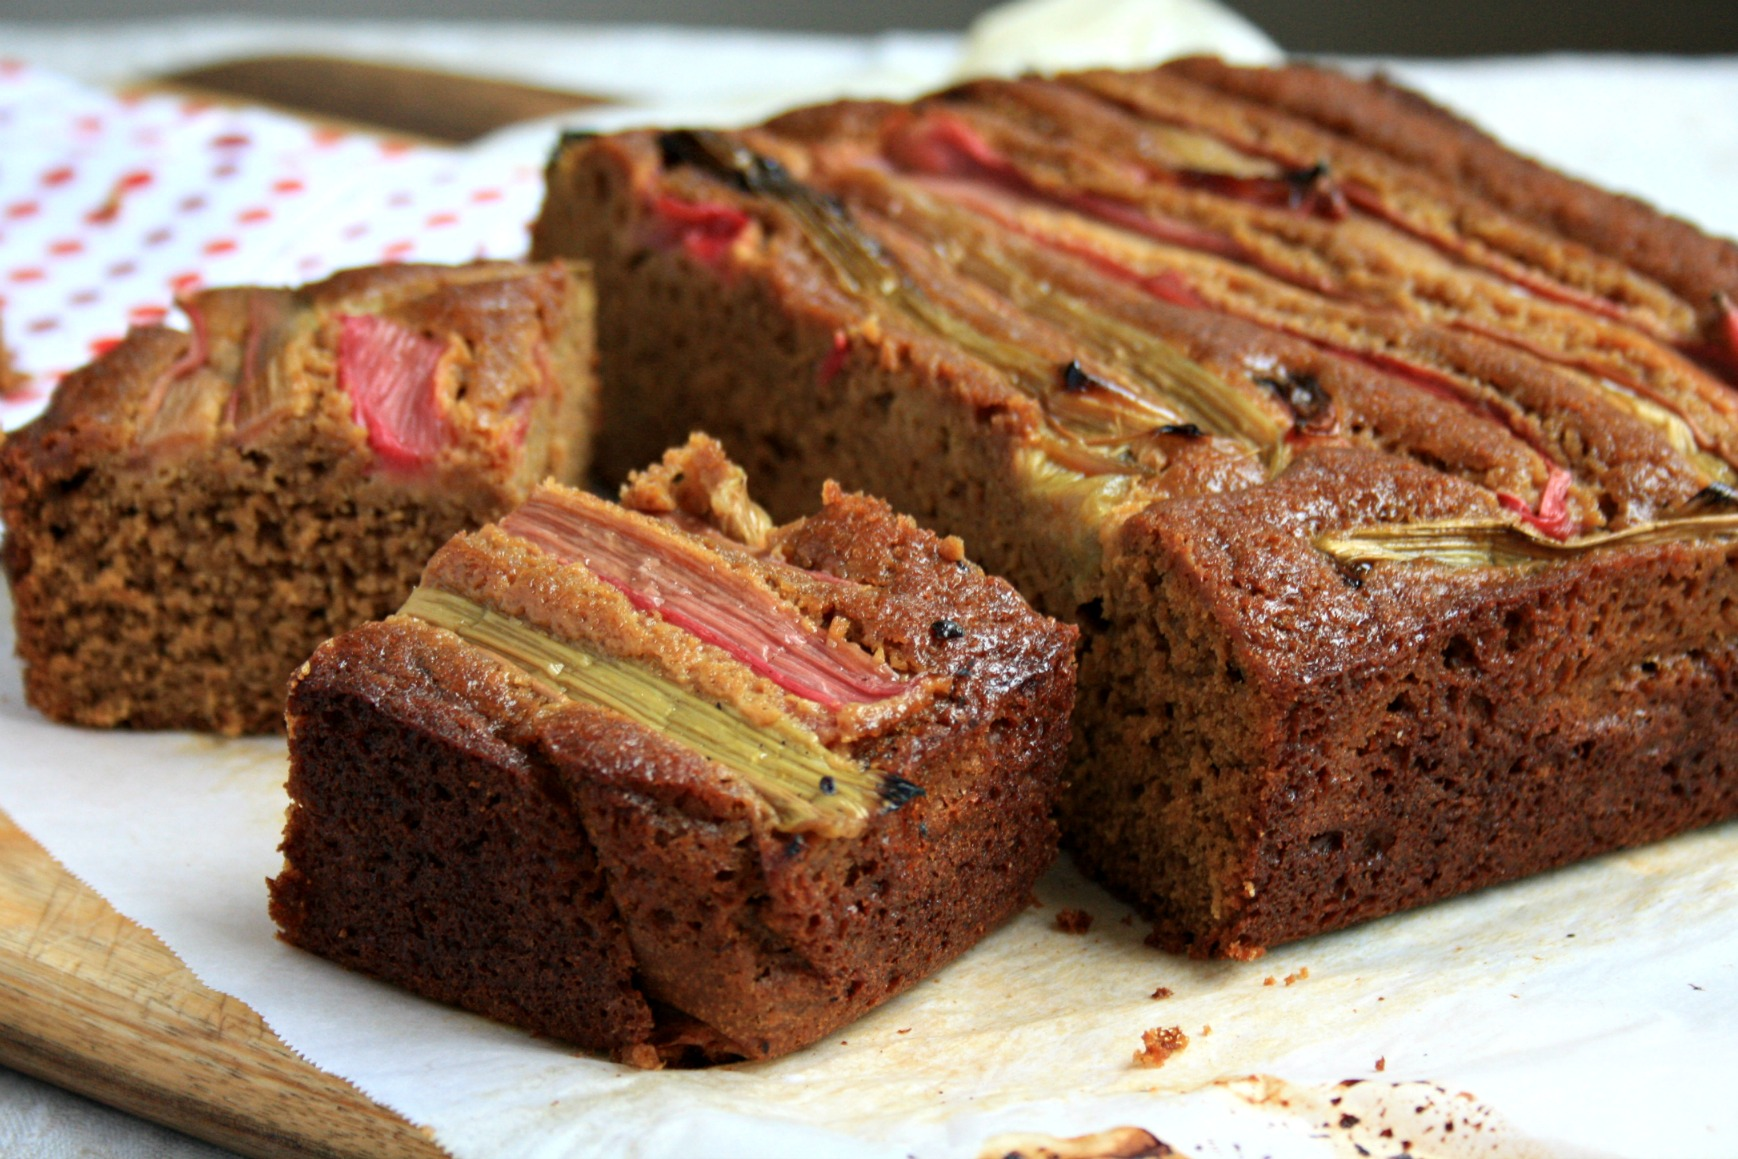 Rhubarb gingerbread cake recipe - Crosby's Molasses